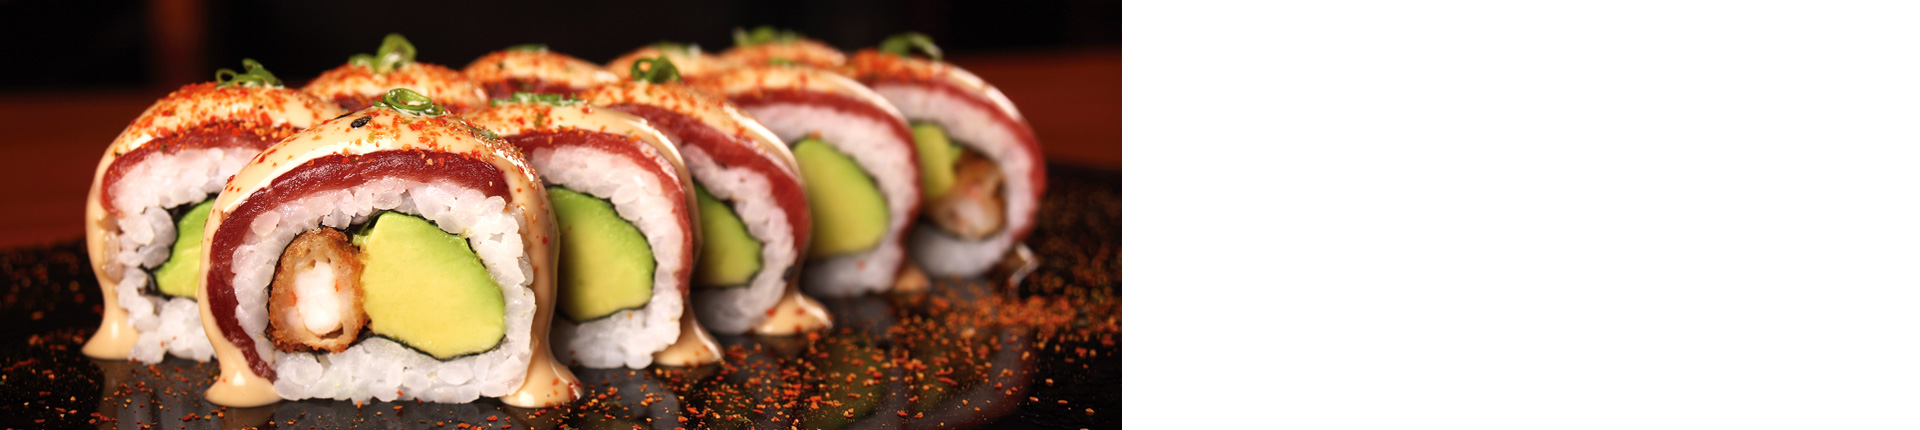 EDO SUSHI BAR | MAKIS A LA CARTA - Club El Comercio Perú.